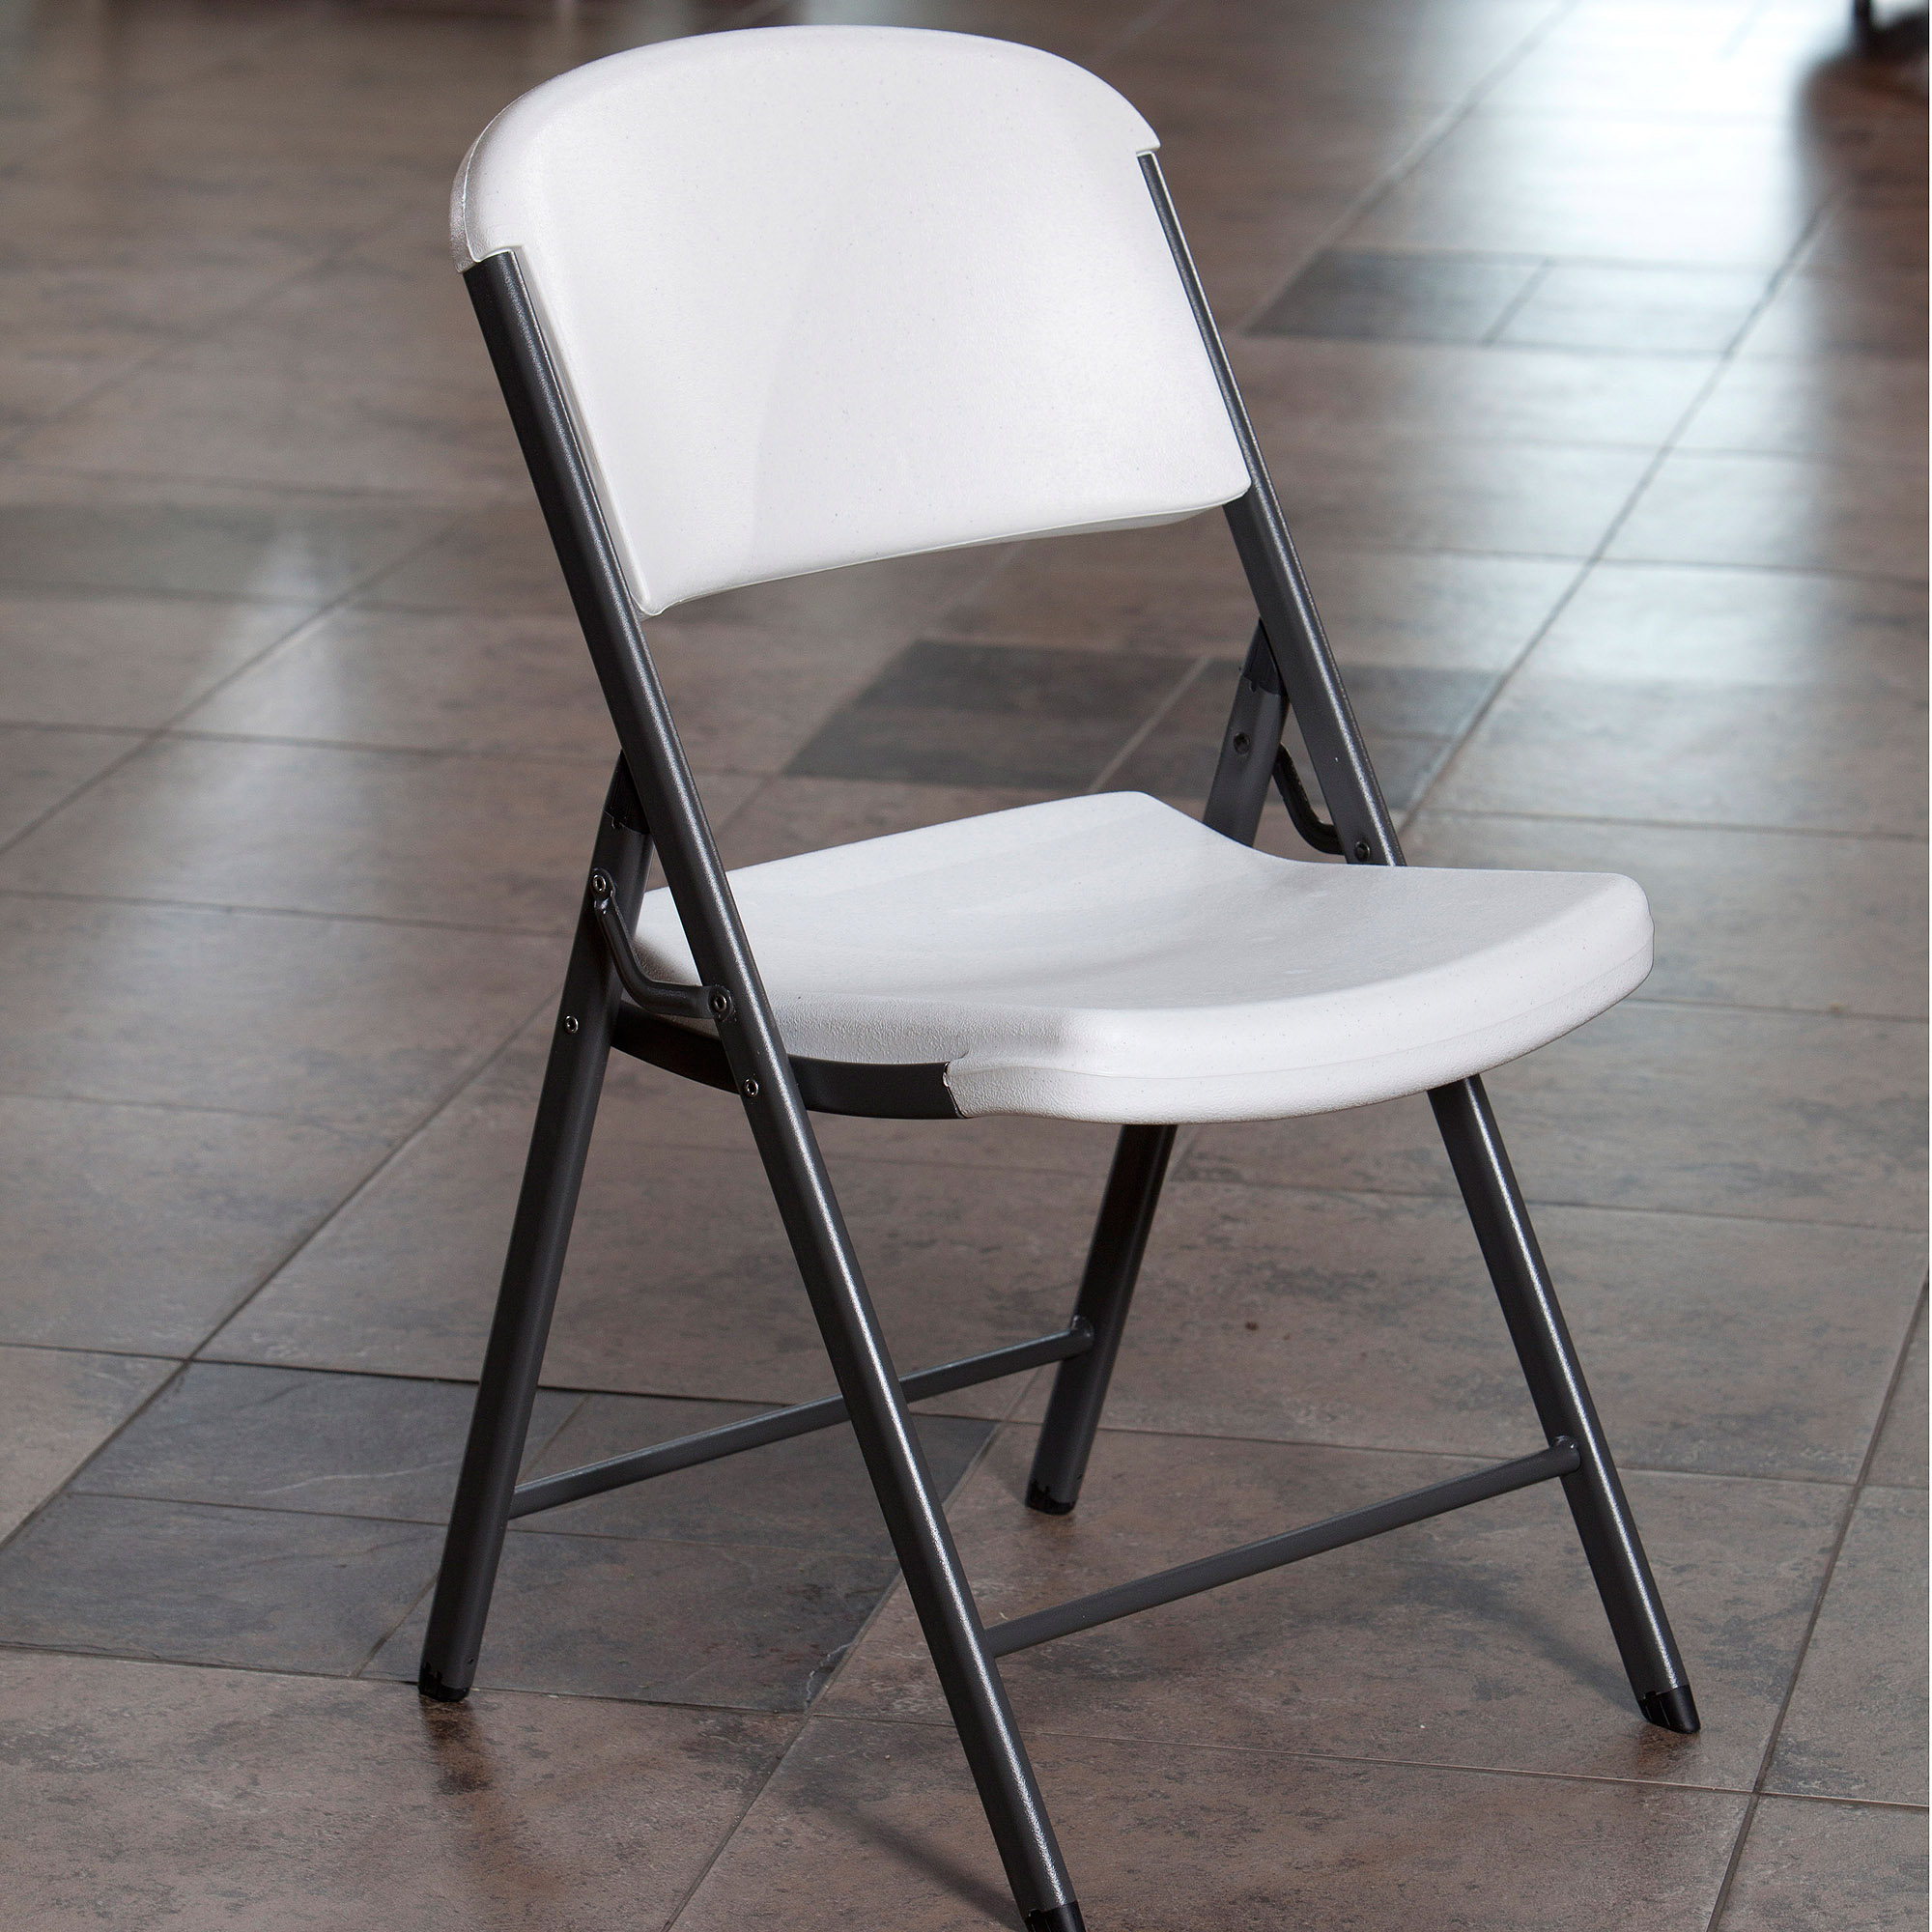 Super folding chairs just for you.